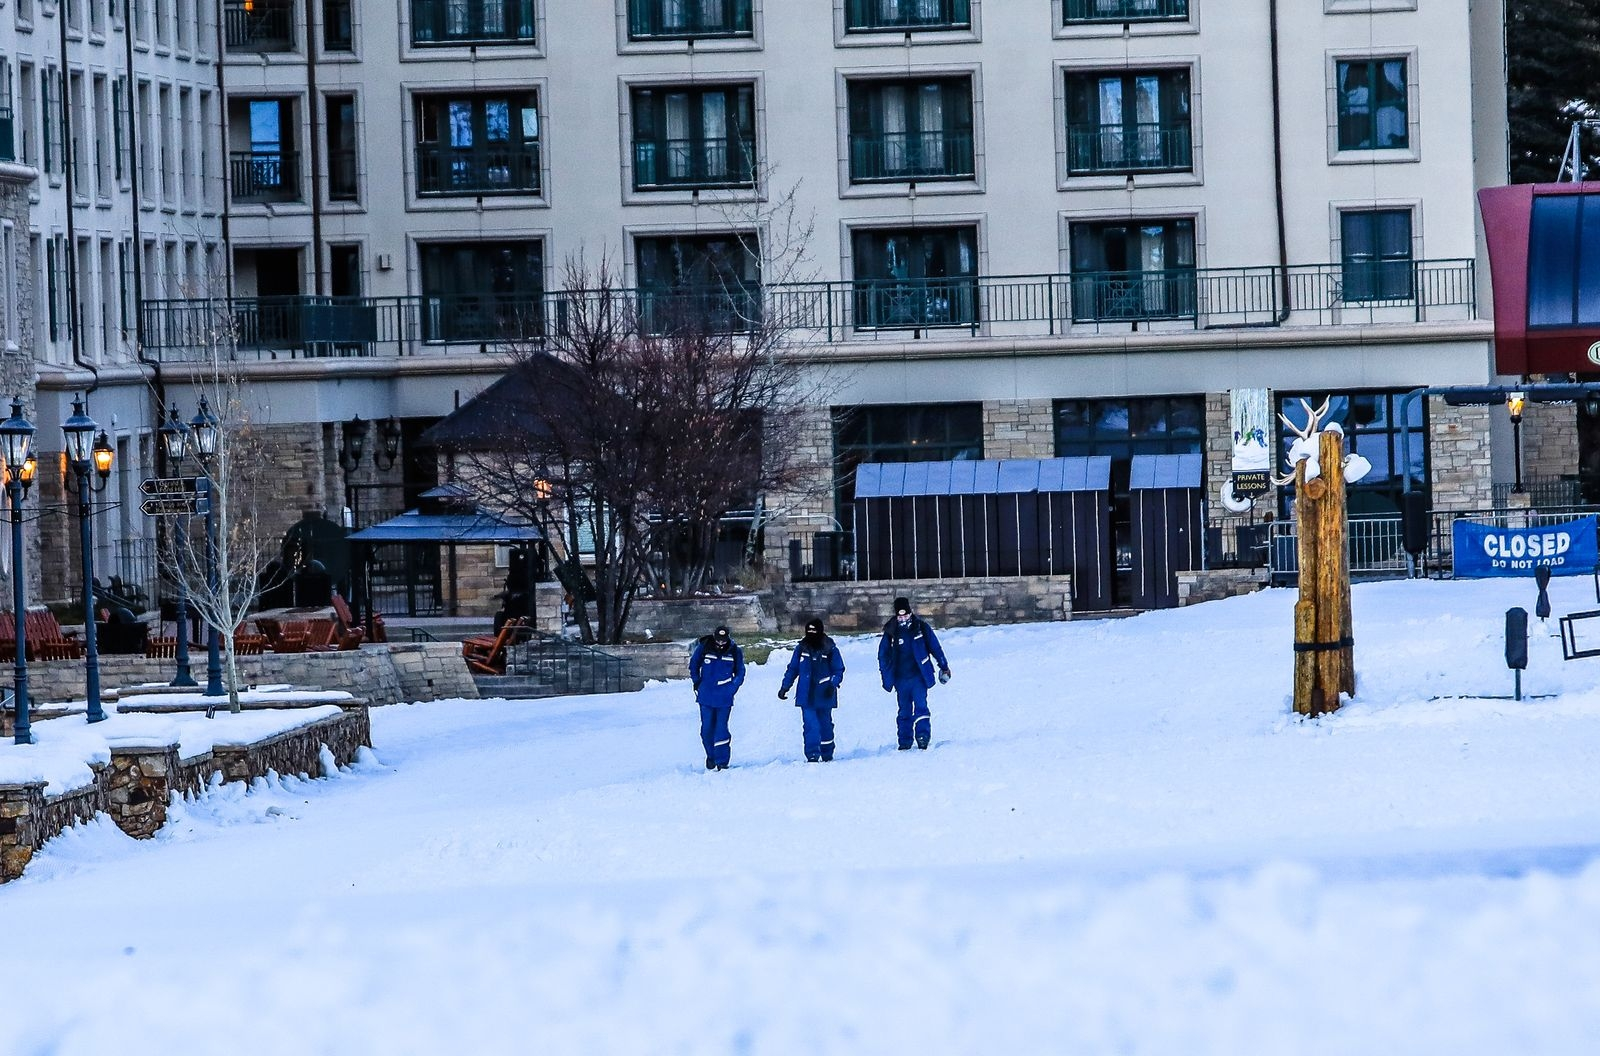 Lift Operators walk down the beach after a shift before opening day Tuesday in Beaver Creek. The resort is scheduled to open Wednesday, Nov. 25.